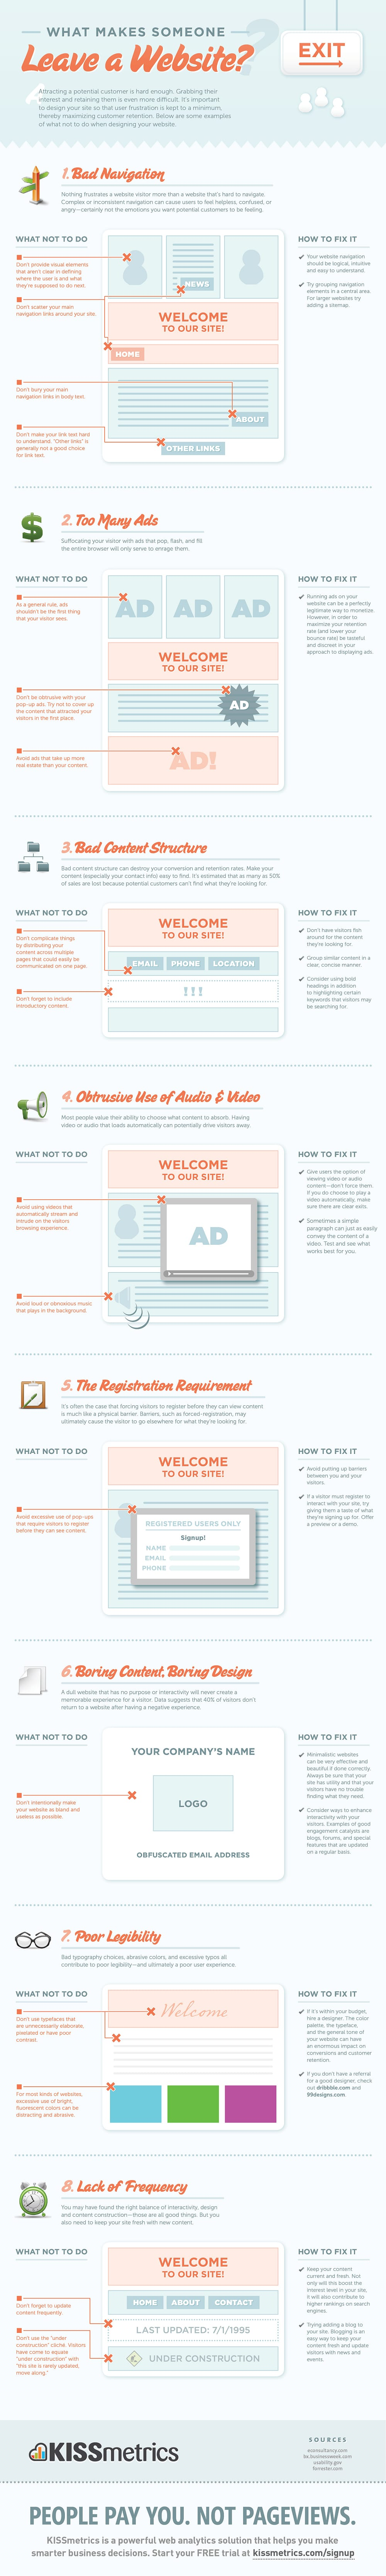 8 Reasons Why People Leave Your Website [Infographic]